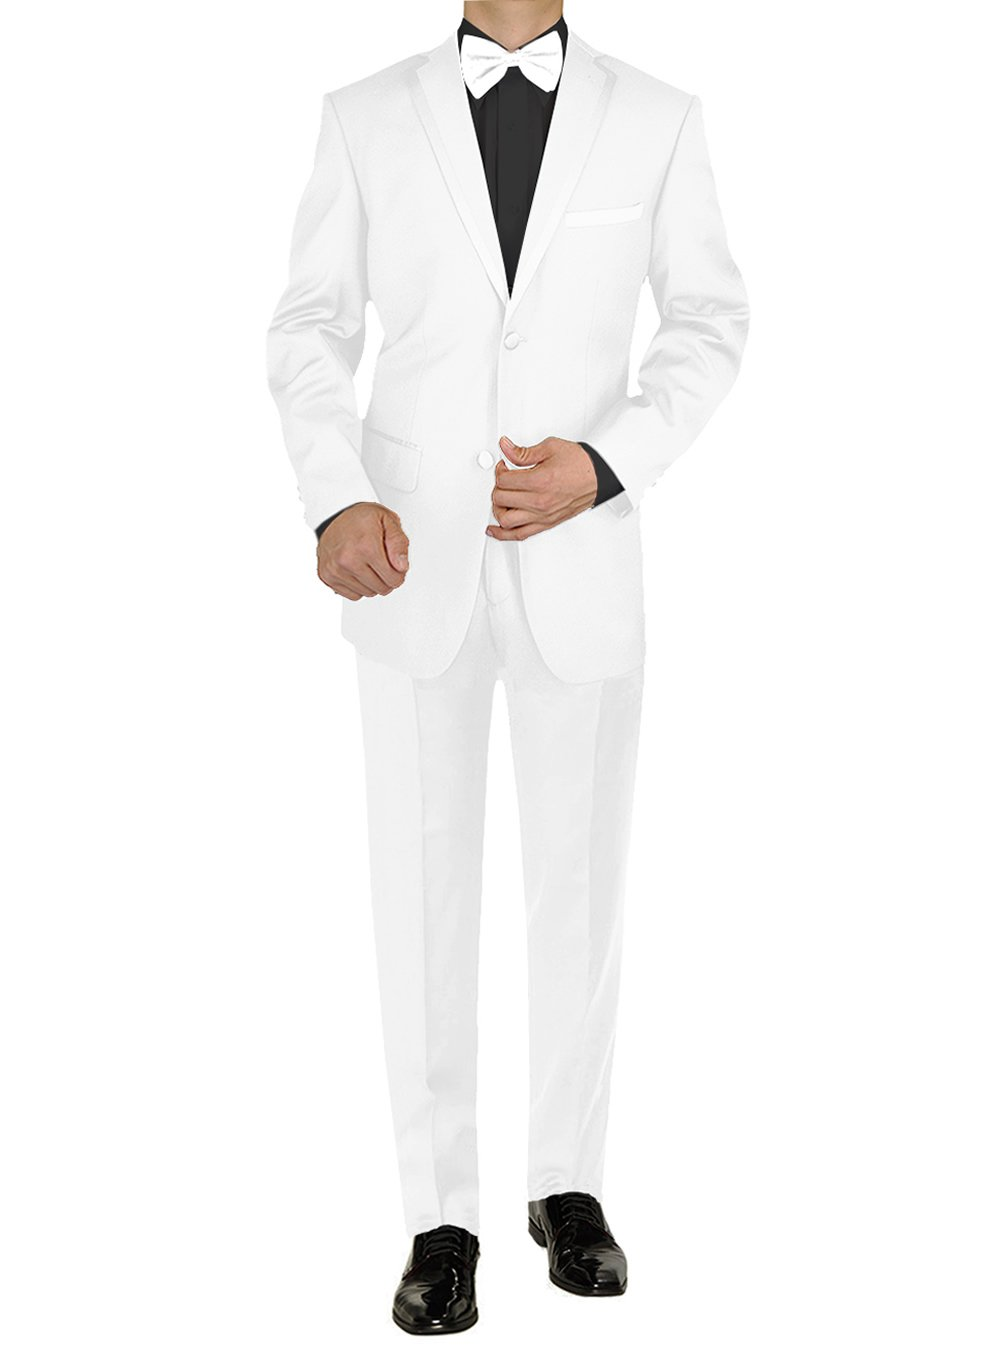 Giorgio Napoli Men's Tuxedo Suit Two Button Jacket Flat Front Adjustable Pants (46 Long US / 56 Long EU, White)